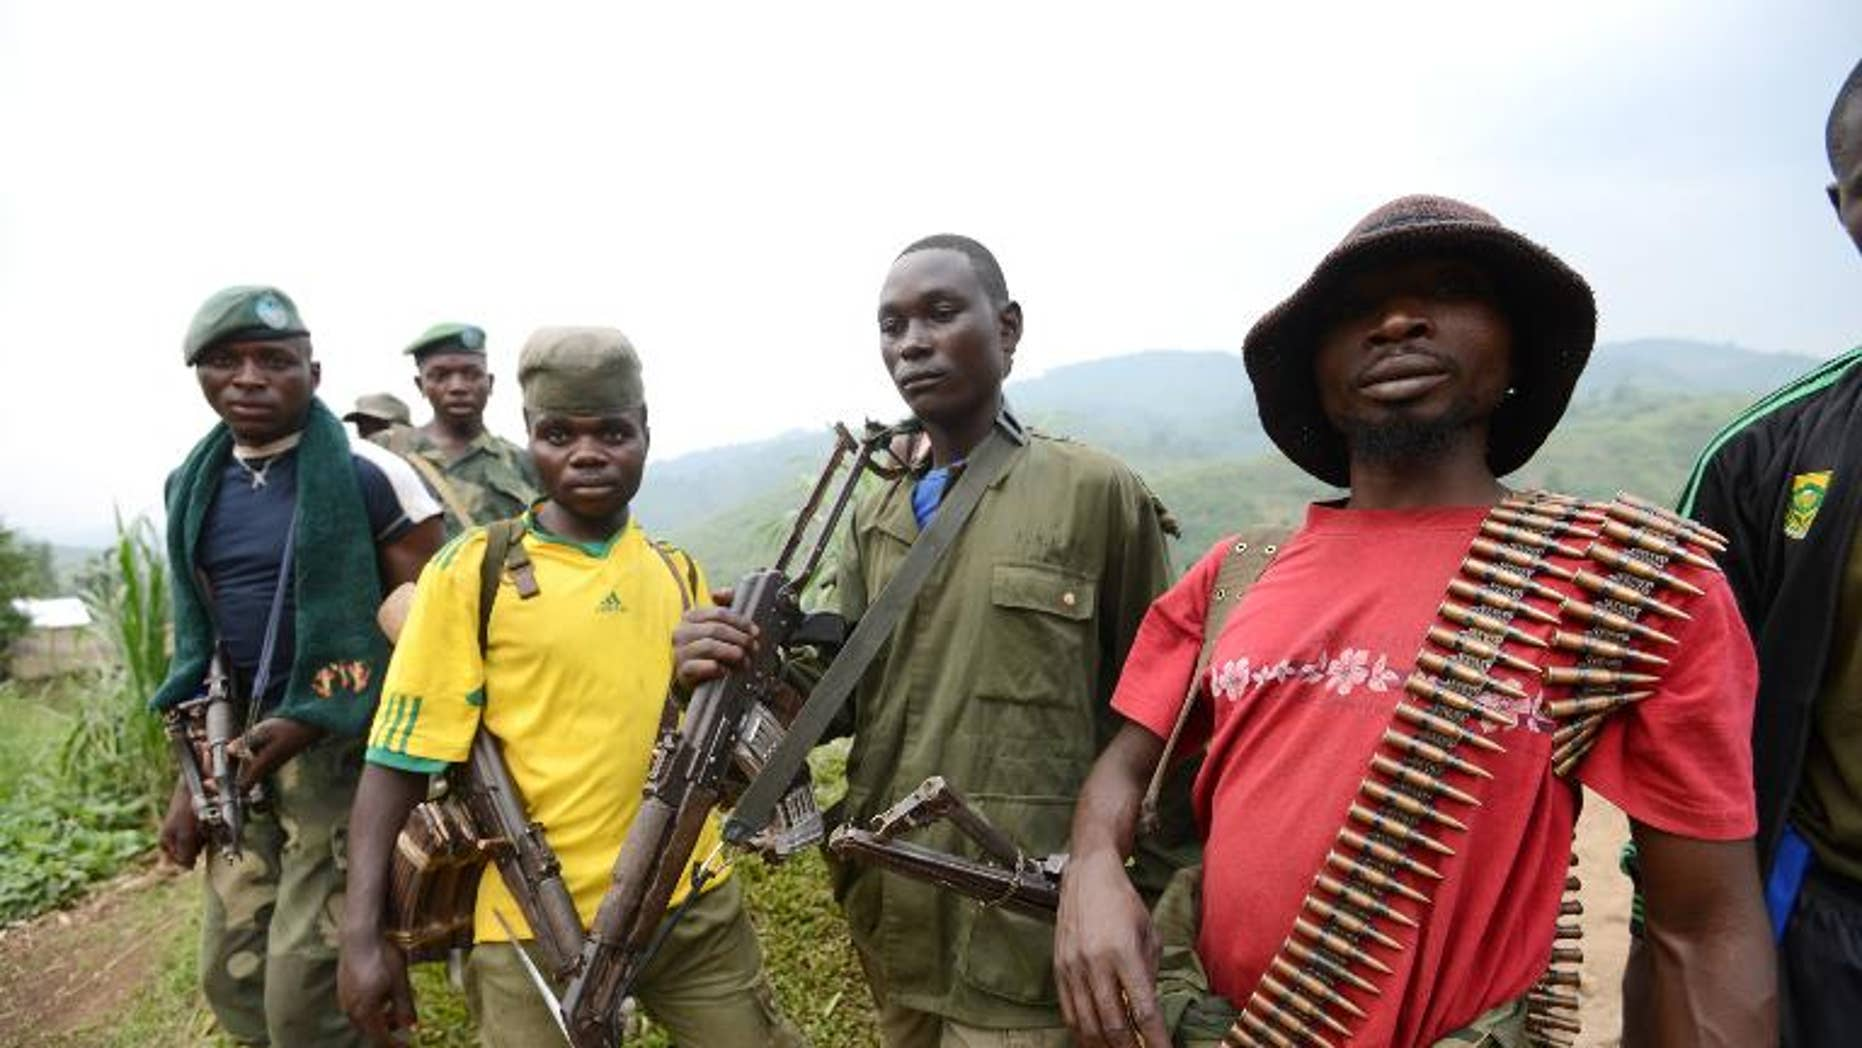 Members of the APCLS (Alliance of Patriots for a Free and Sovereign Congo) paramilitary group take part in a meeting in the village of Nyabiondo on July 26, 2013